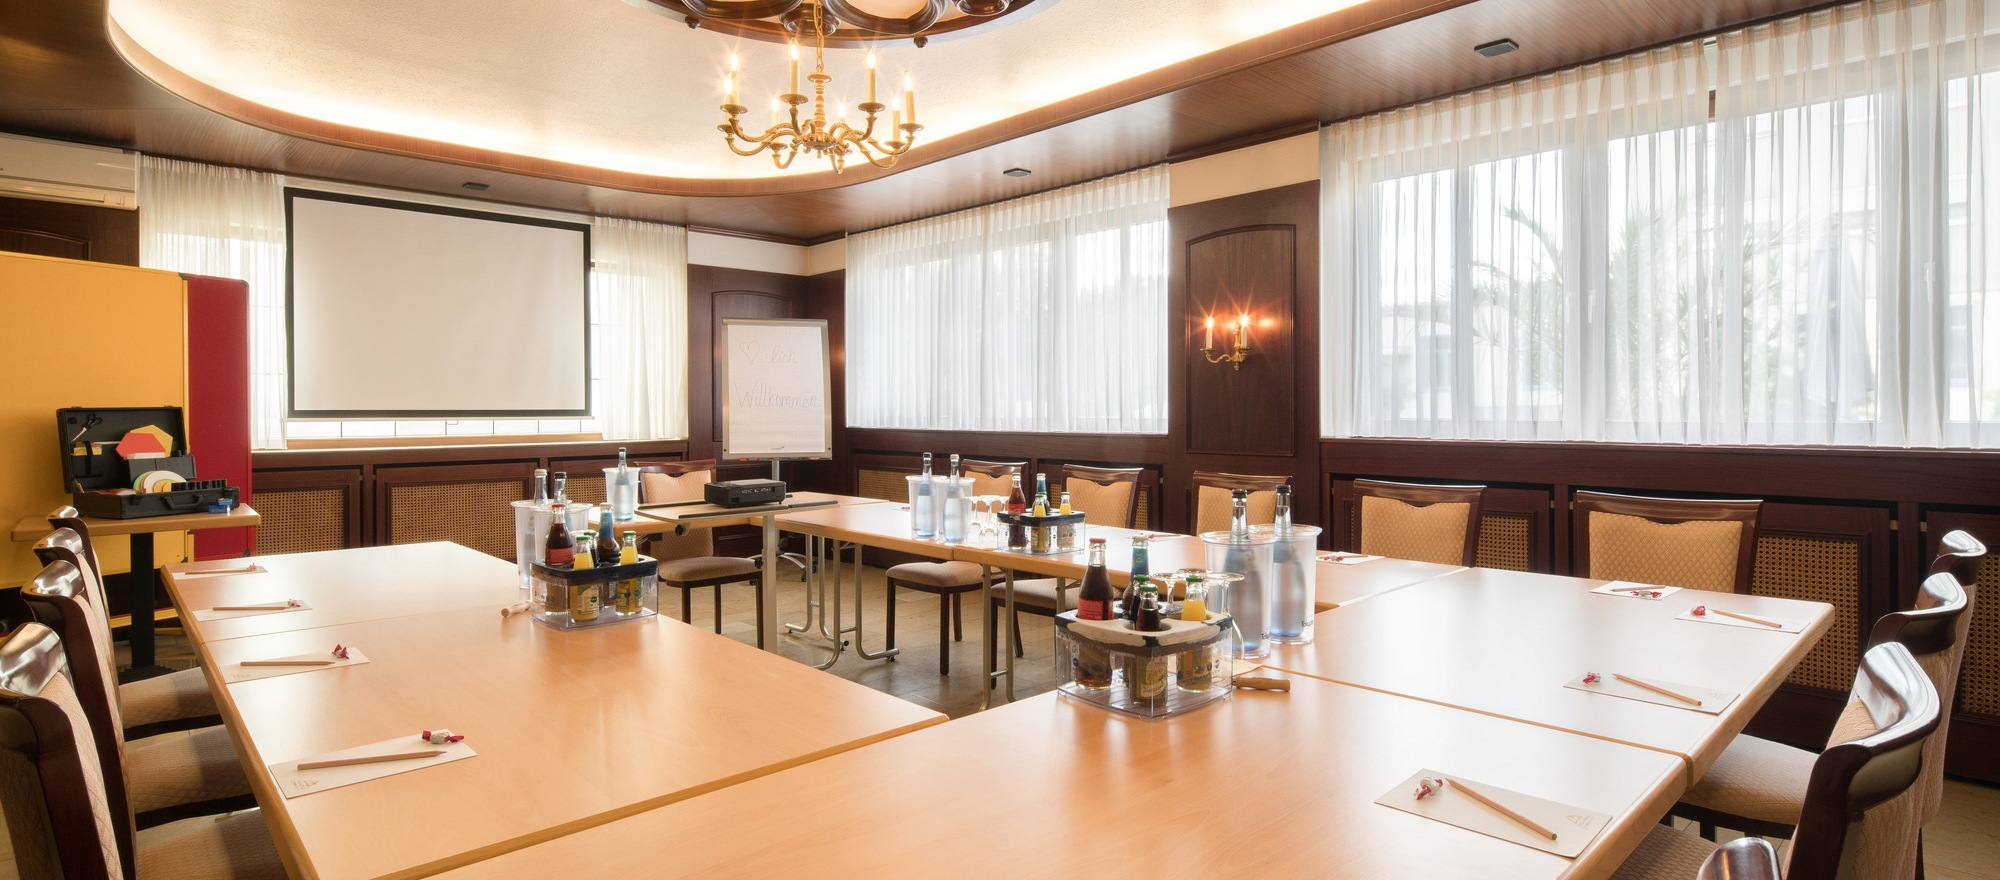 Conference room at the 3-star-superior hotel Ringhotel Reubel in Nuremberg-Zirndorf